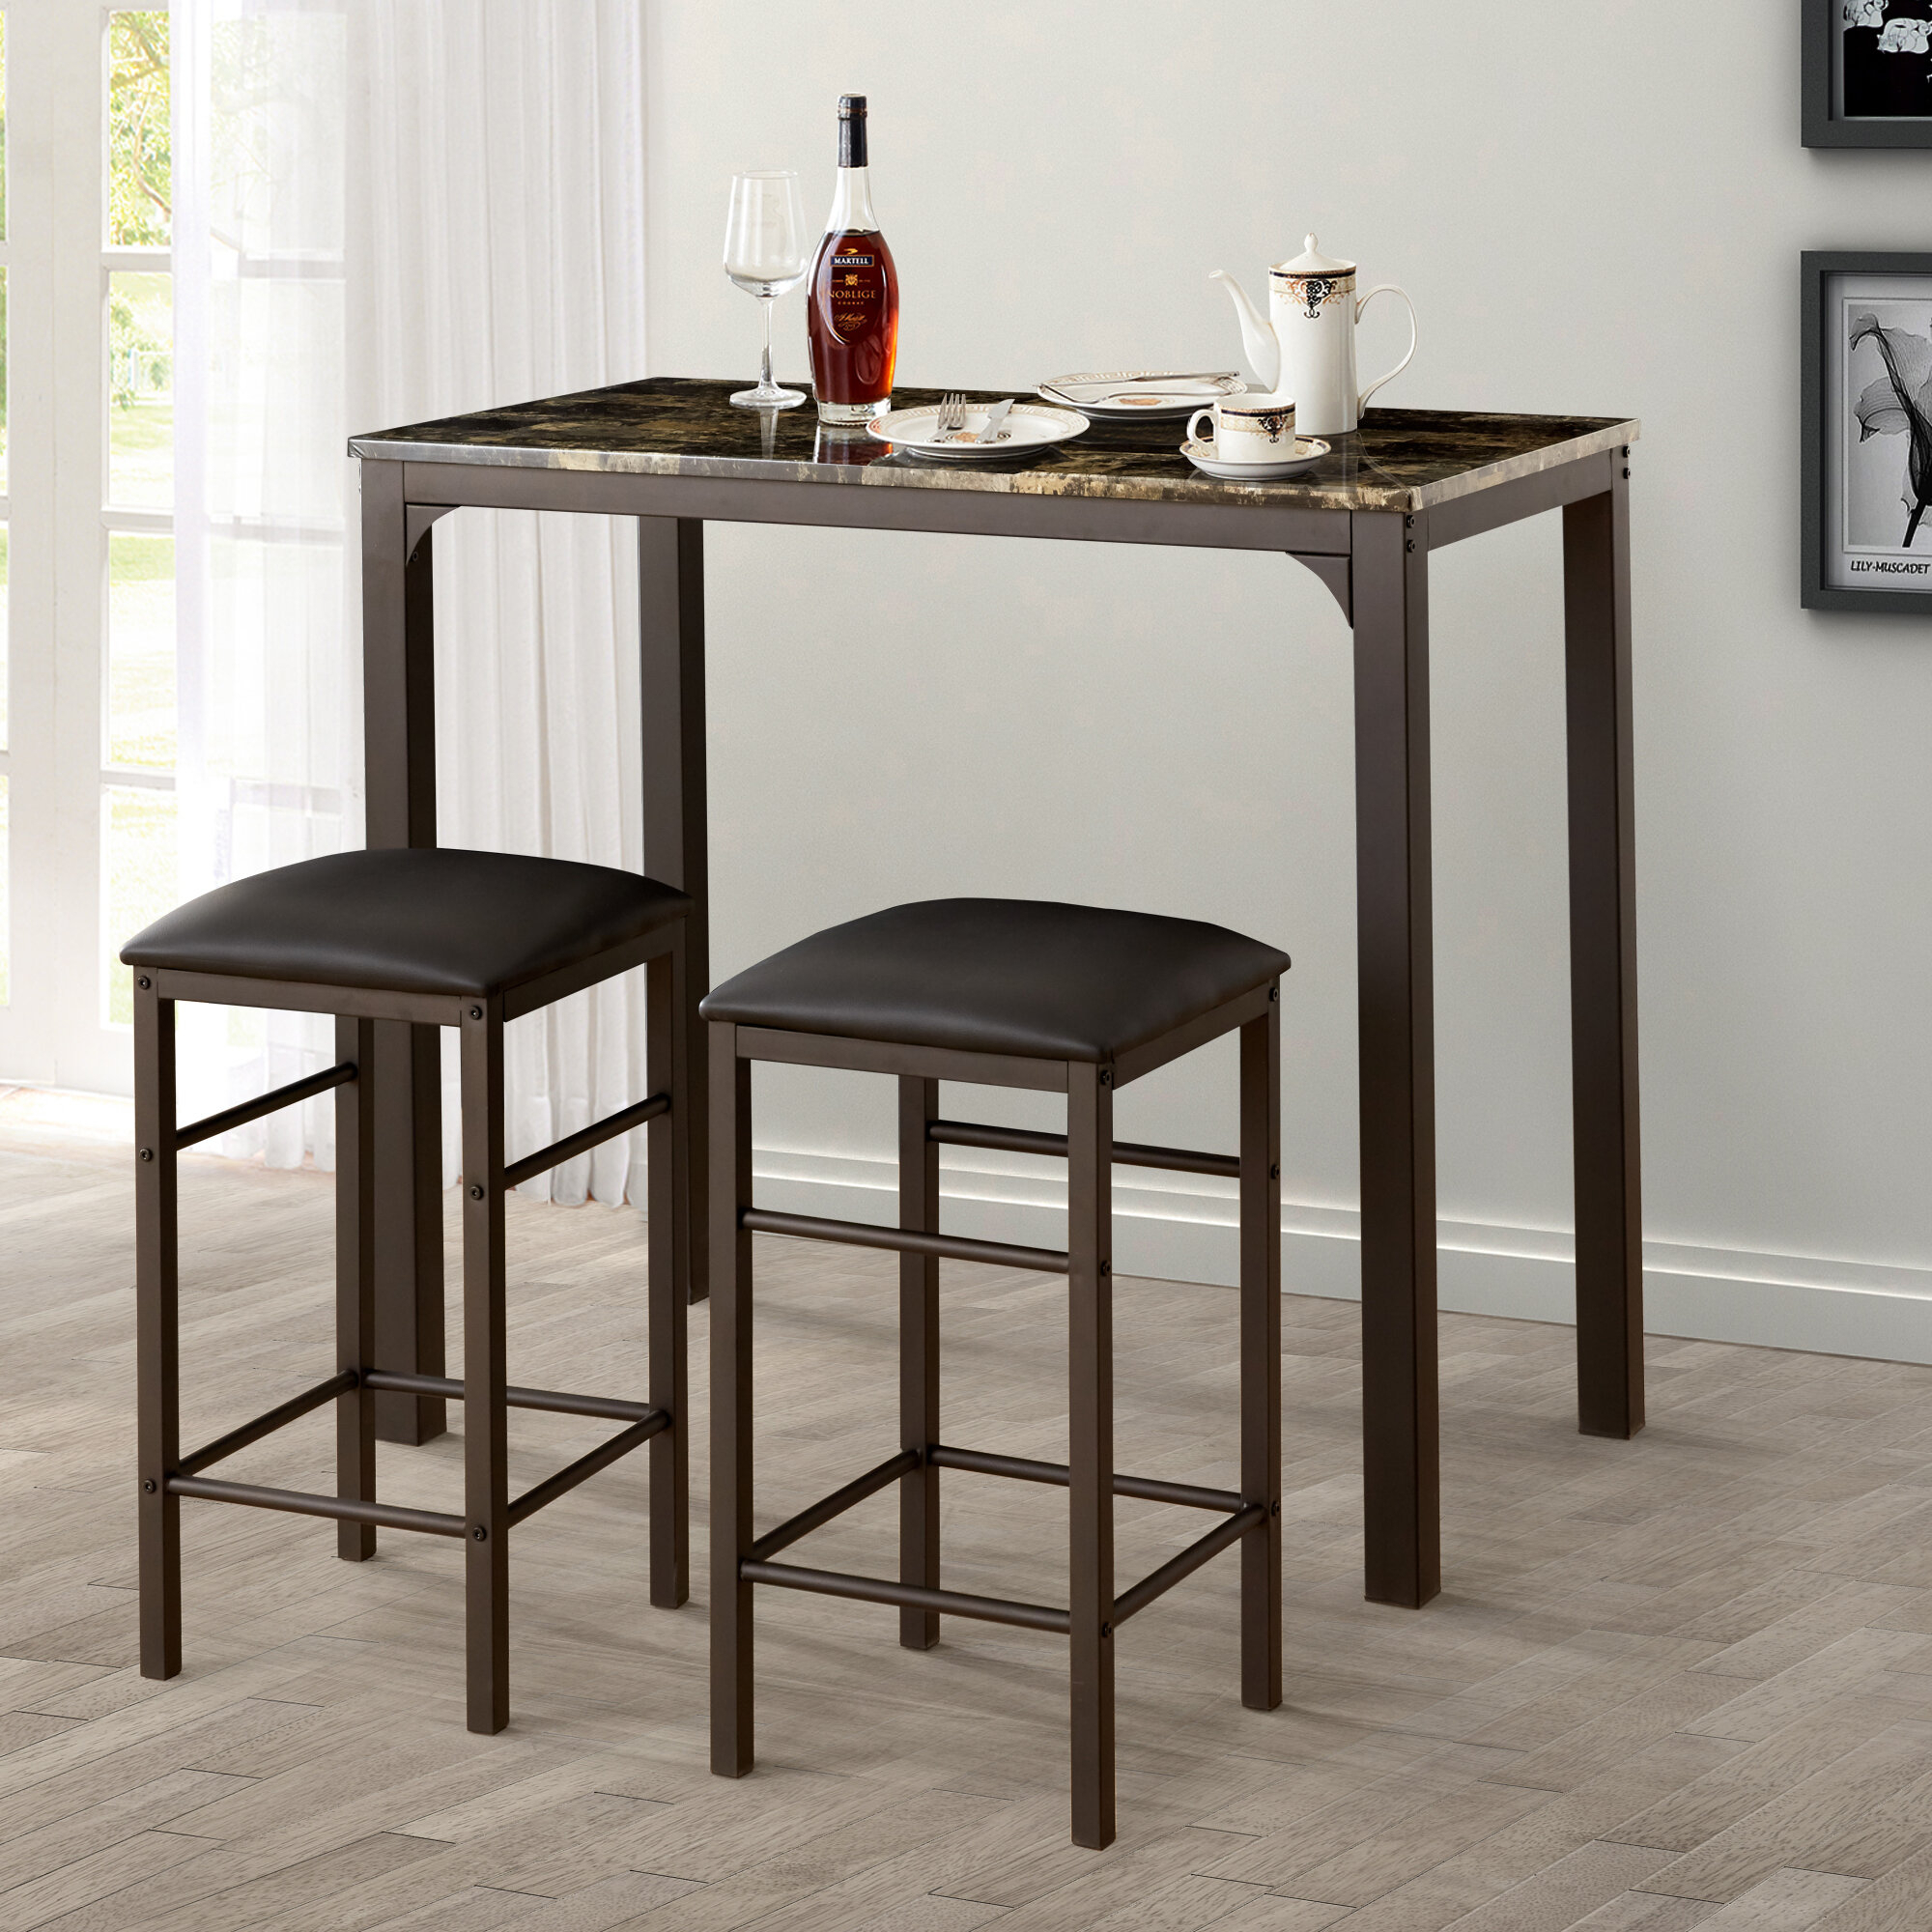 Lillard 3 Piece Breakfast Nook Dining Set In Most Recently Released Kernville 3 Piece Counter Height Dining Sets (Image 10 of 20)